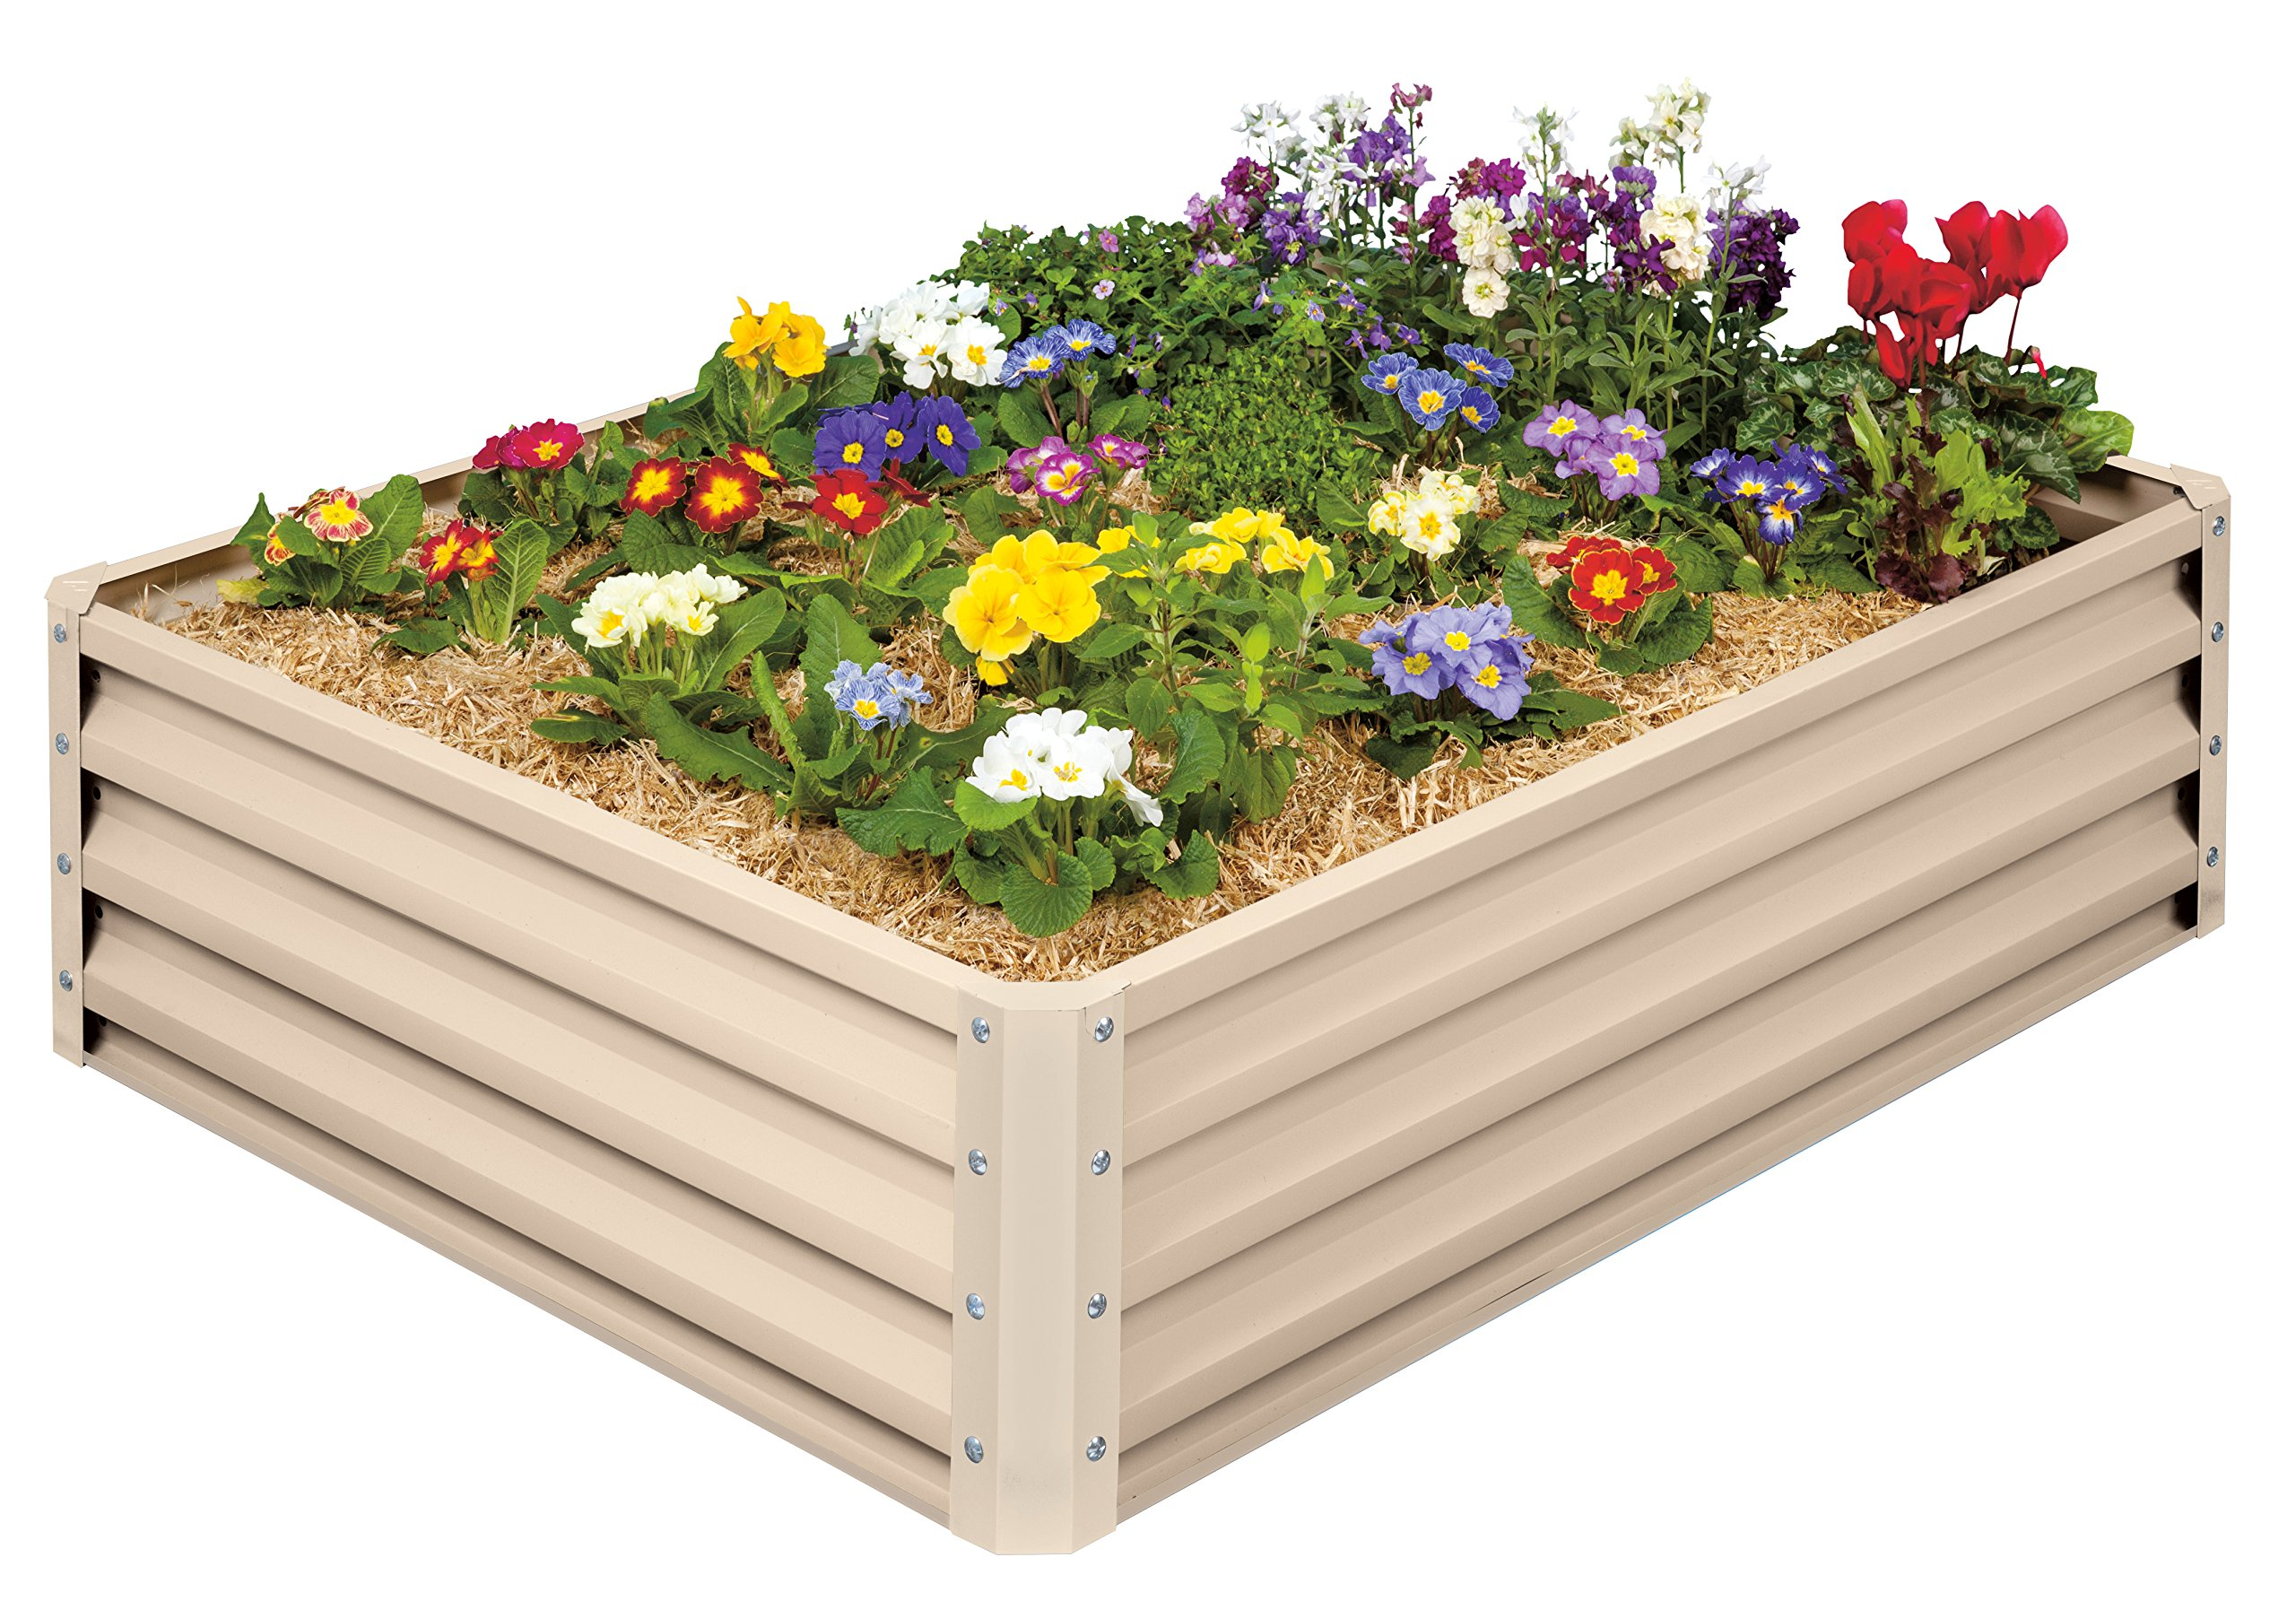 Metal Raised Garden Bed Kit - Elevated Planter Box For Growing Herbs, Vegetables, Flowers, and Succulents (1) 1 Metal Raised Garden Bed Kit